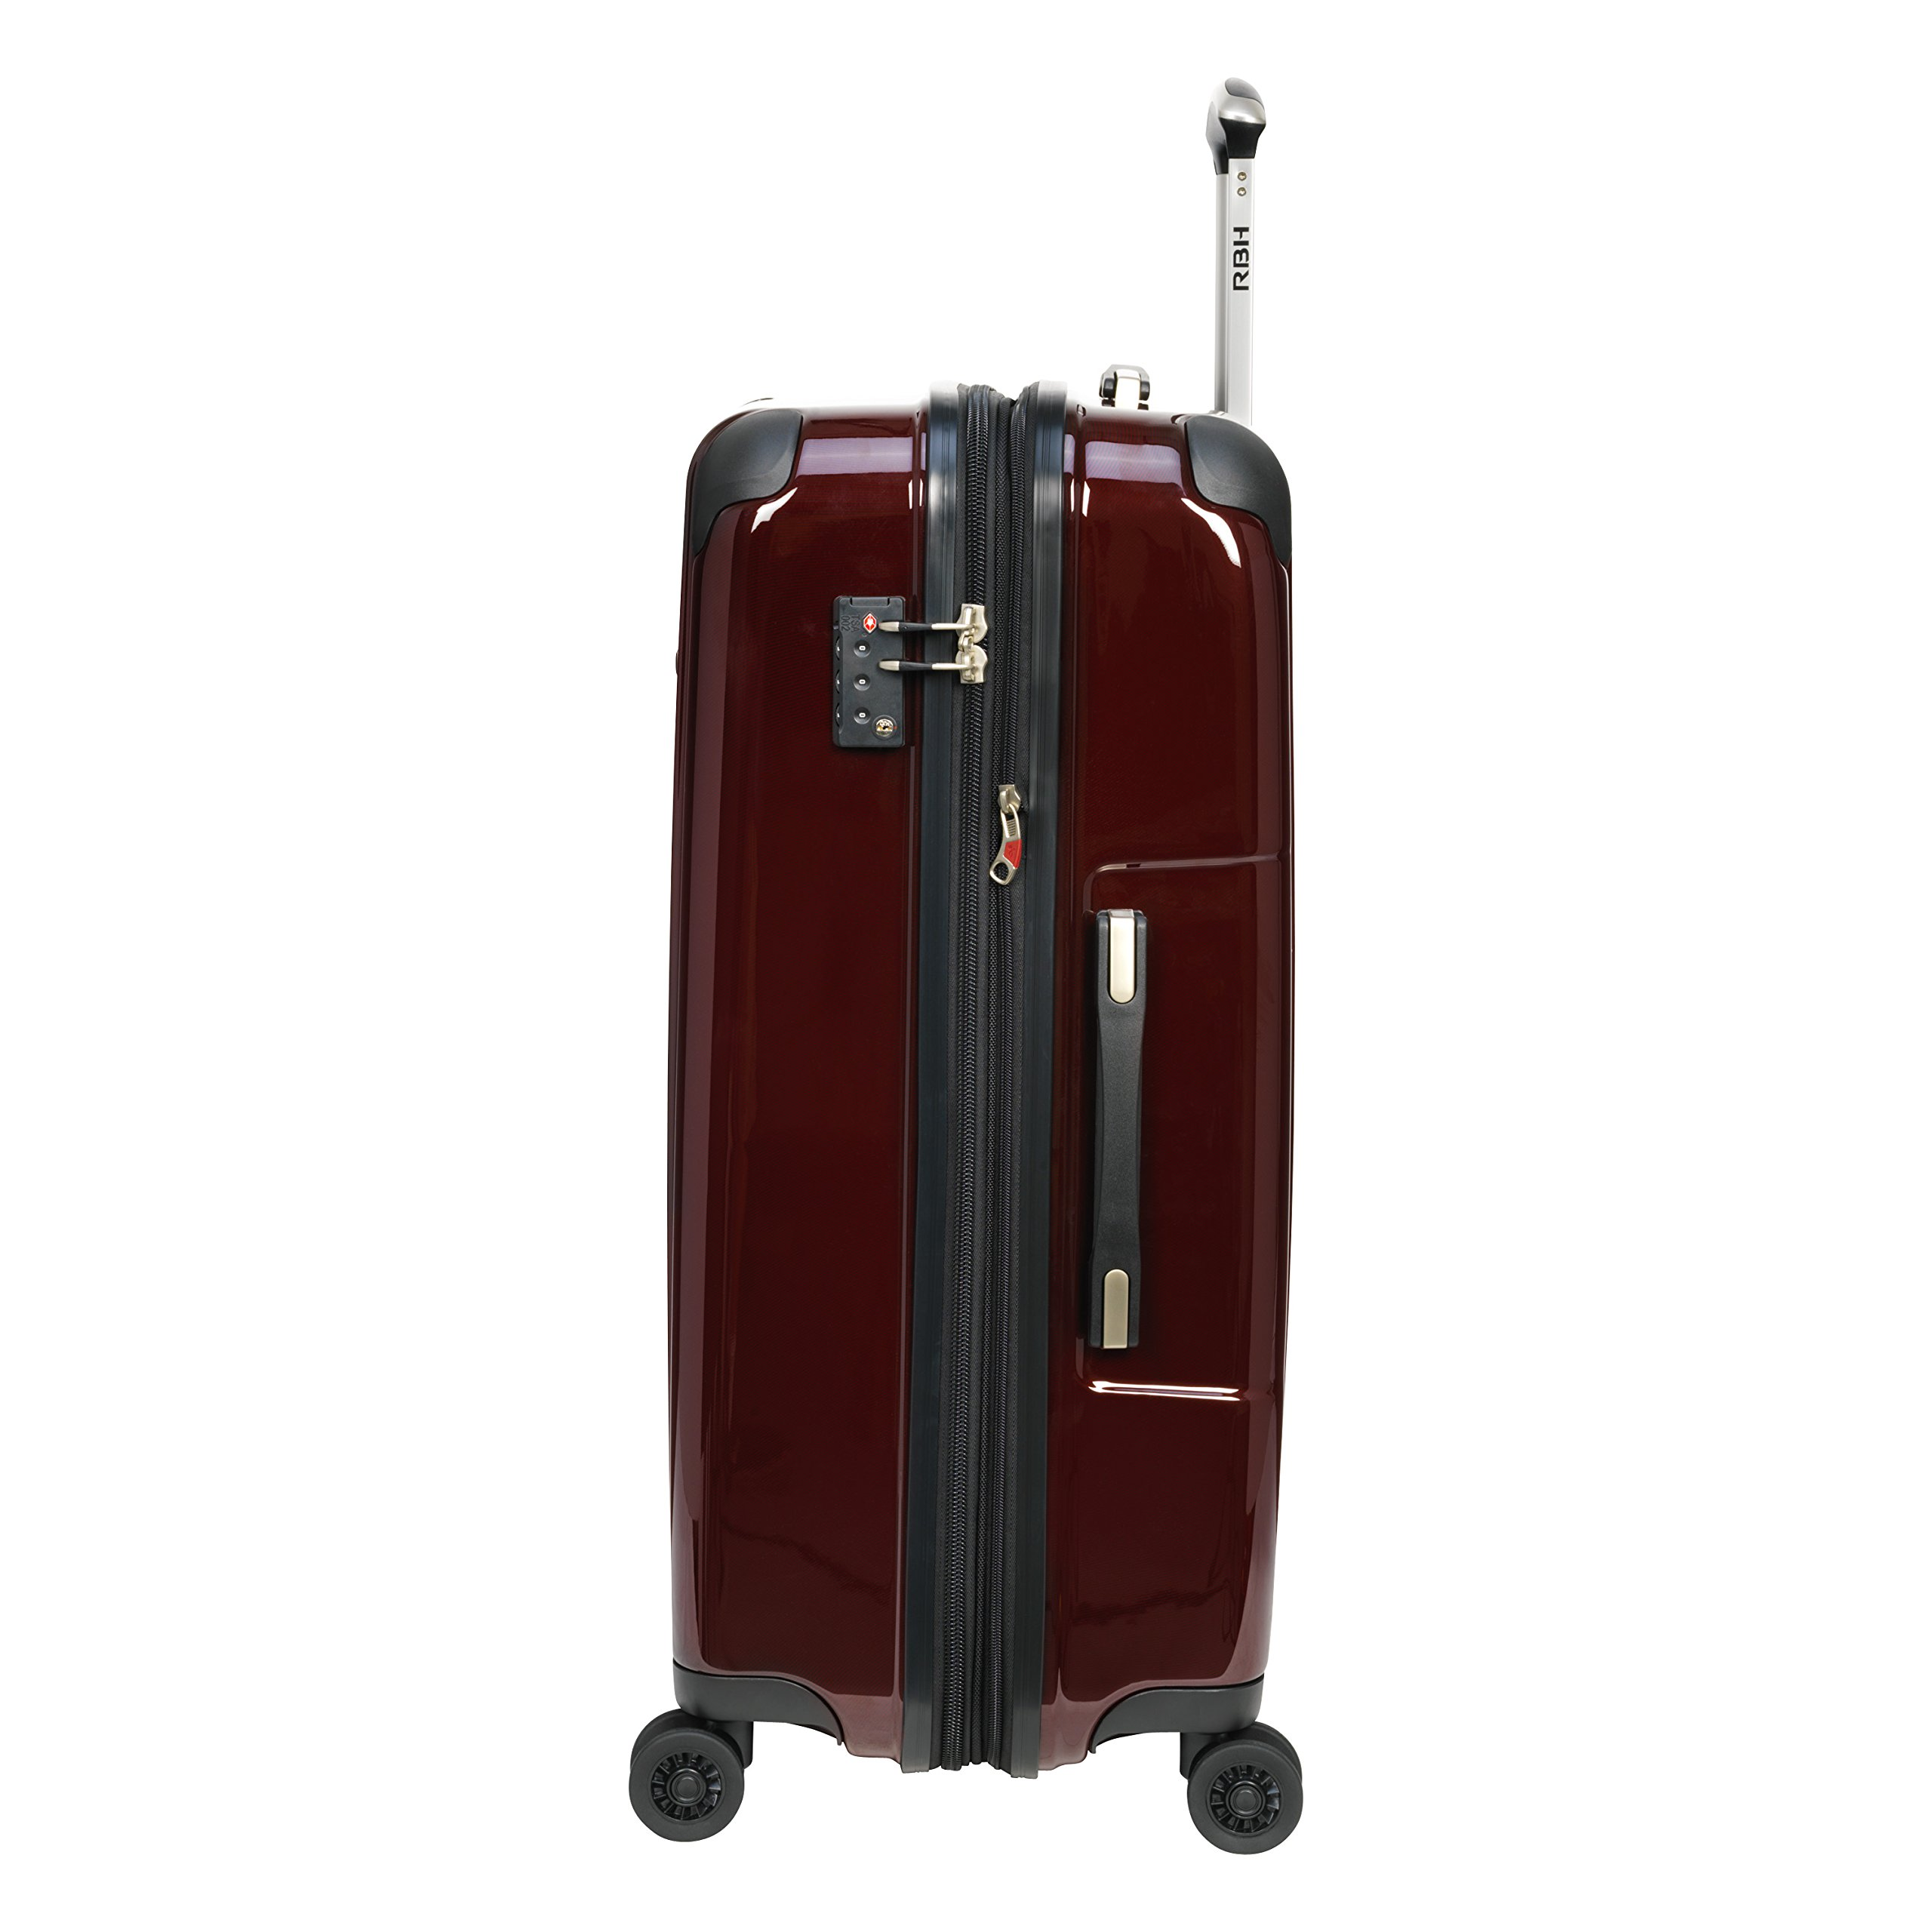 Ricardo Beverly Hills Luggage Rodeo Drive 29-Inch 4-Wheel Expandable Upright, Black Cherry, One Size by Ricardo Beverly Hills (Image #6)